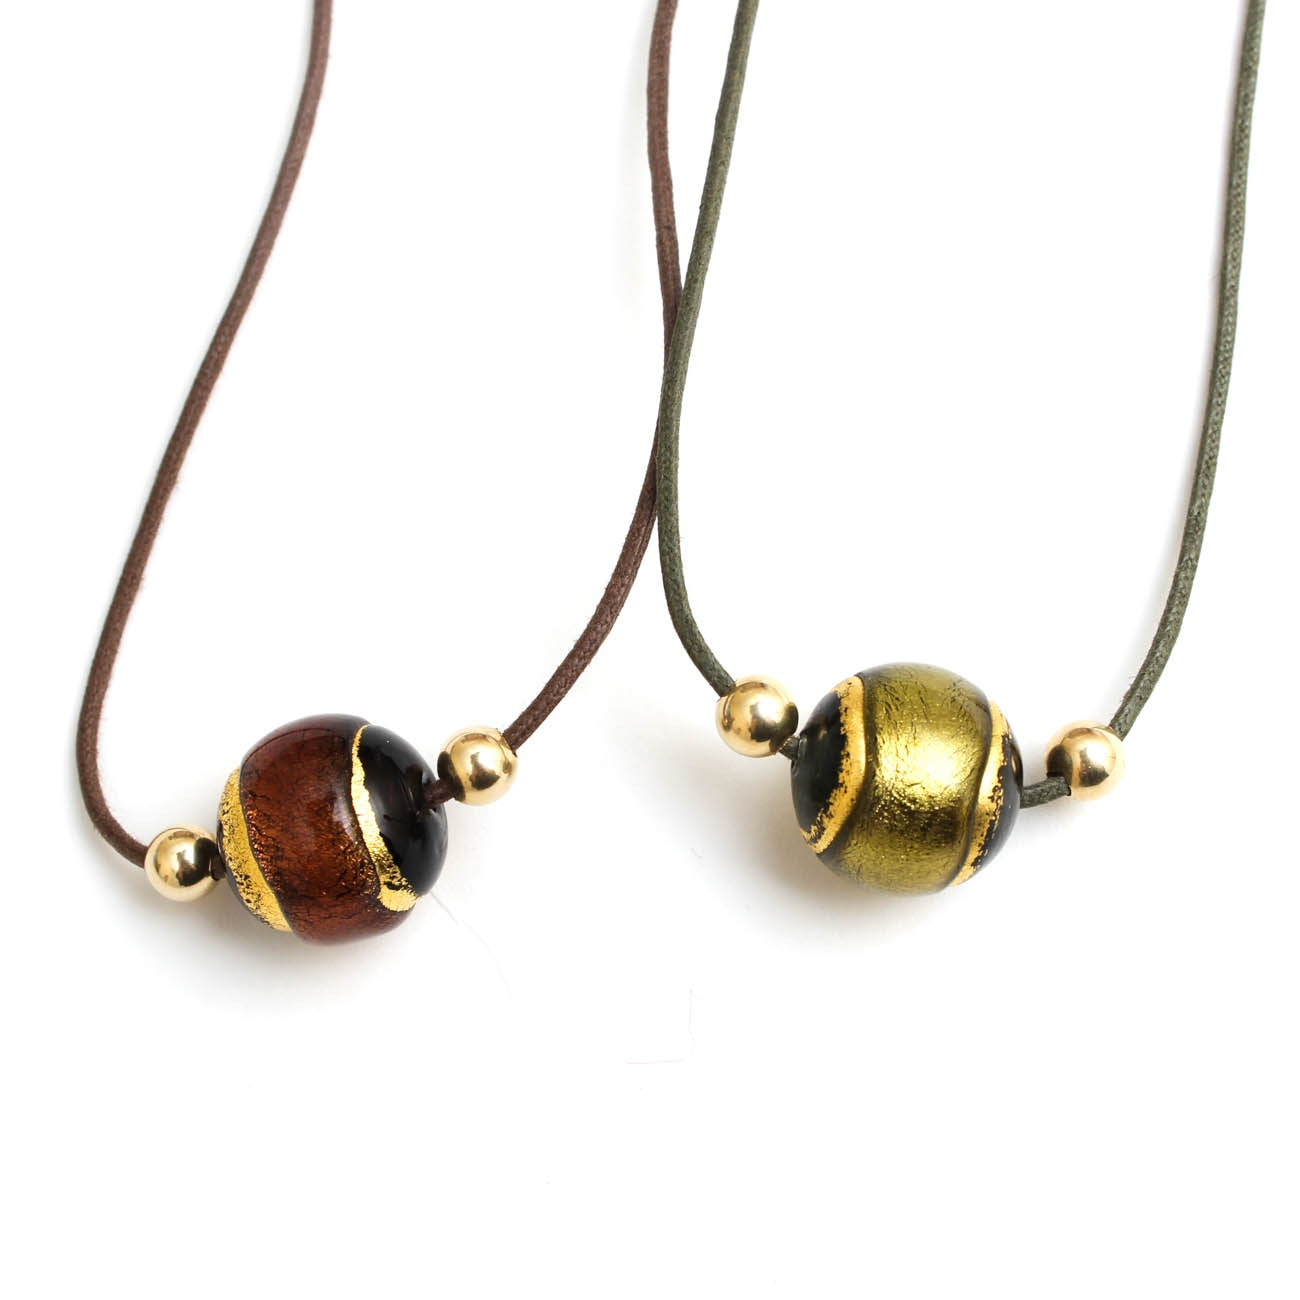 14K Yellow Gold and Glass Bead Necklaces